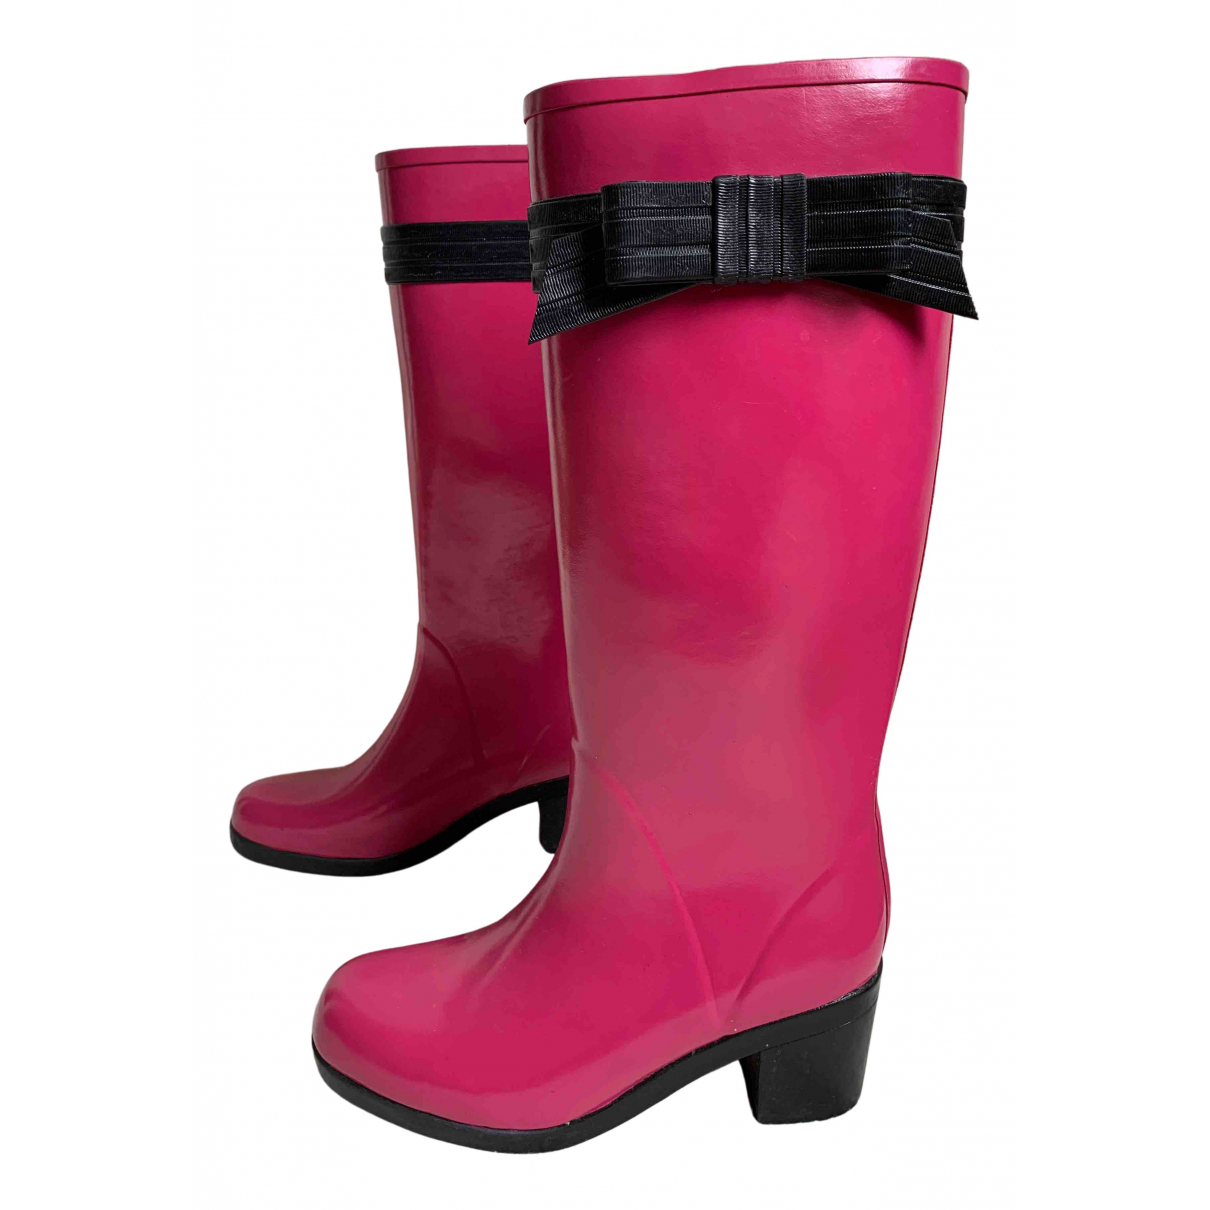 Kate Spade N Pink Rubber Boots for Women 7 US